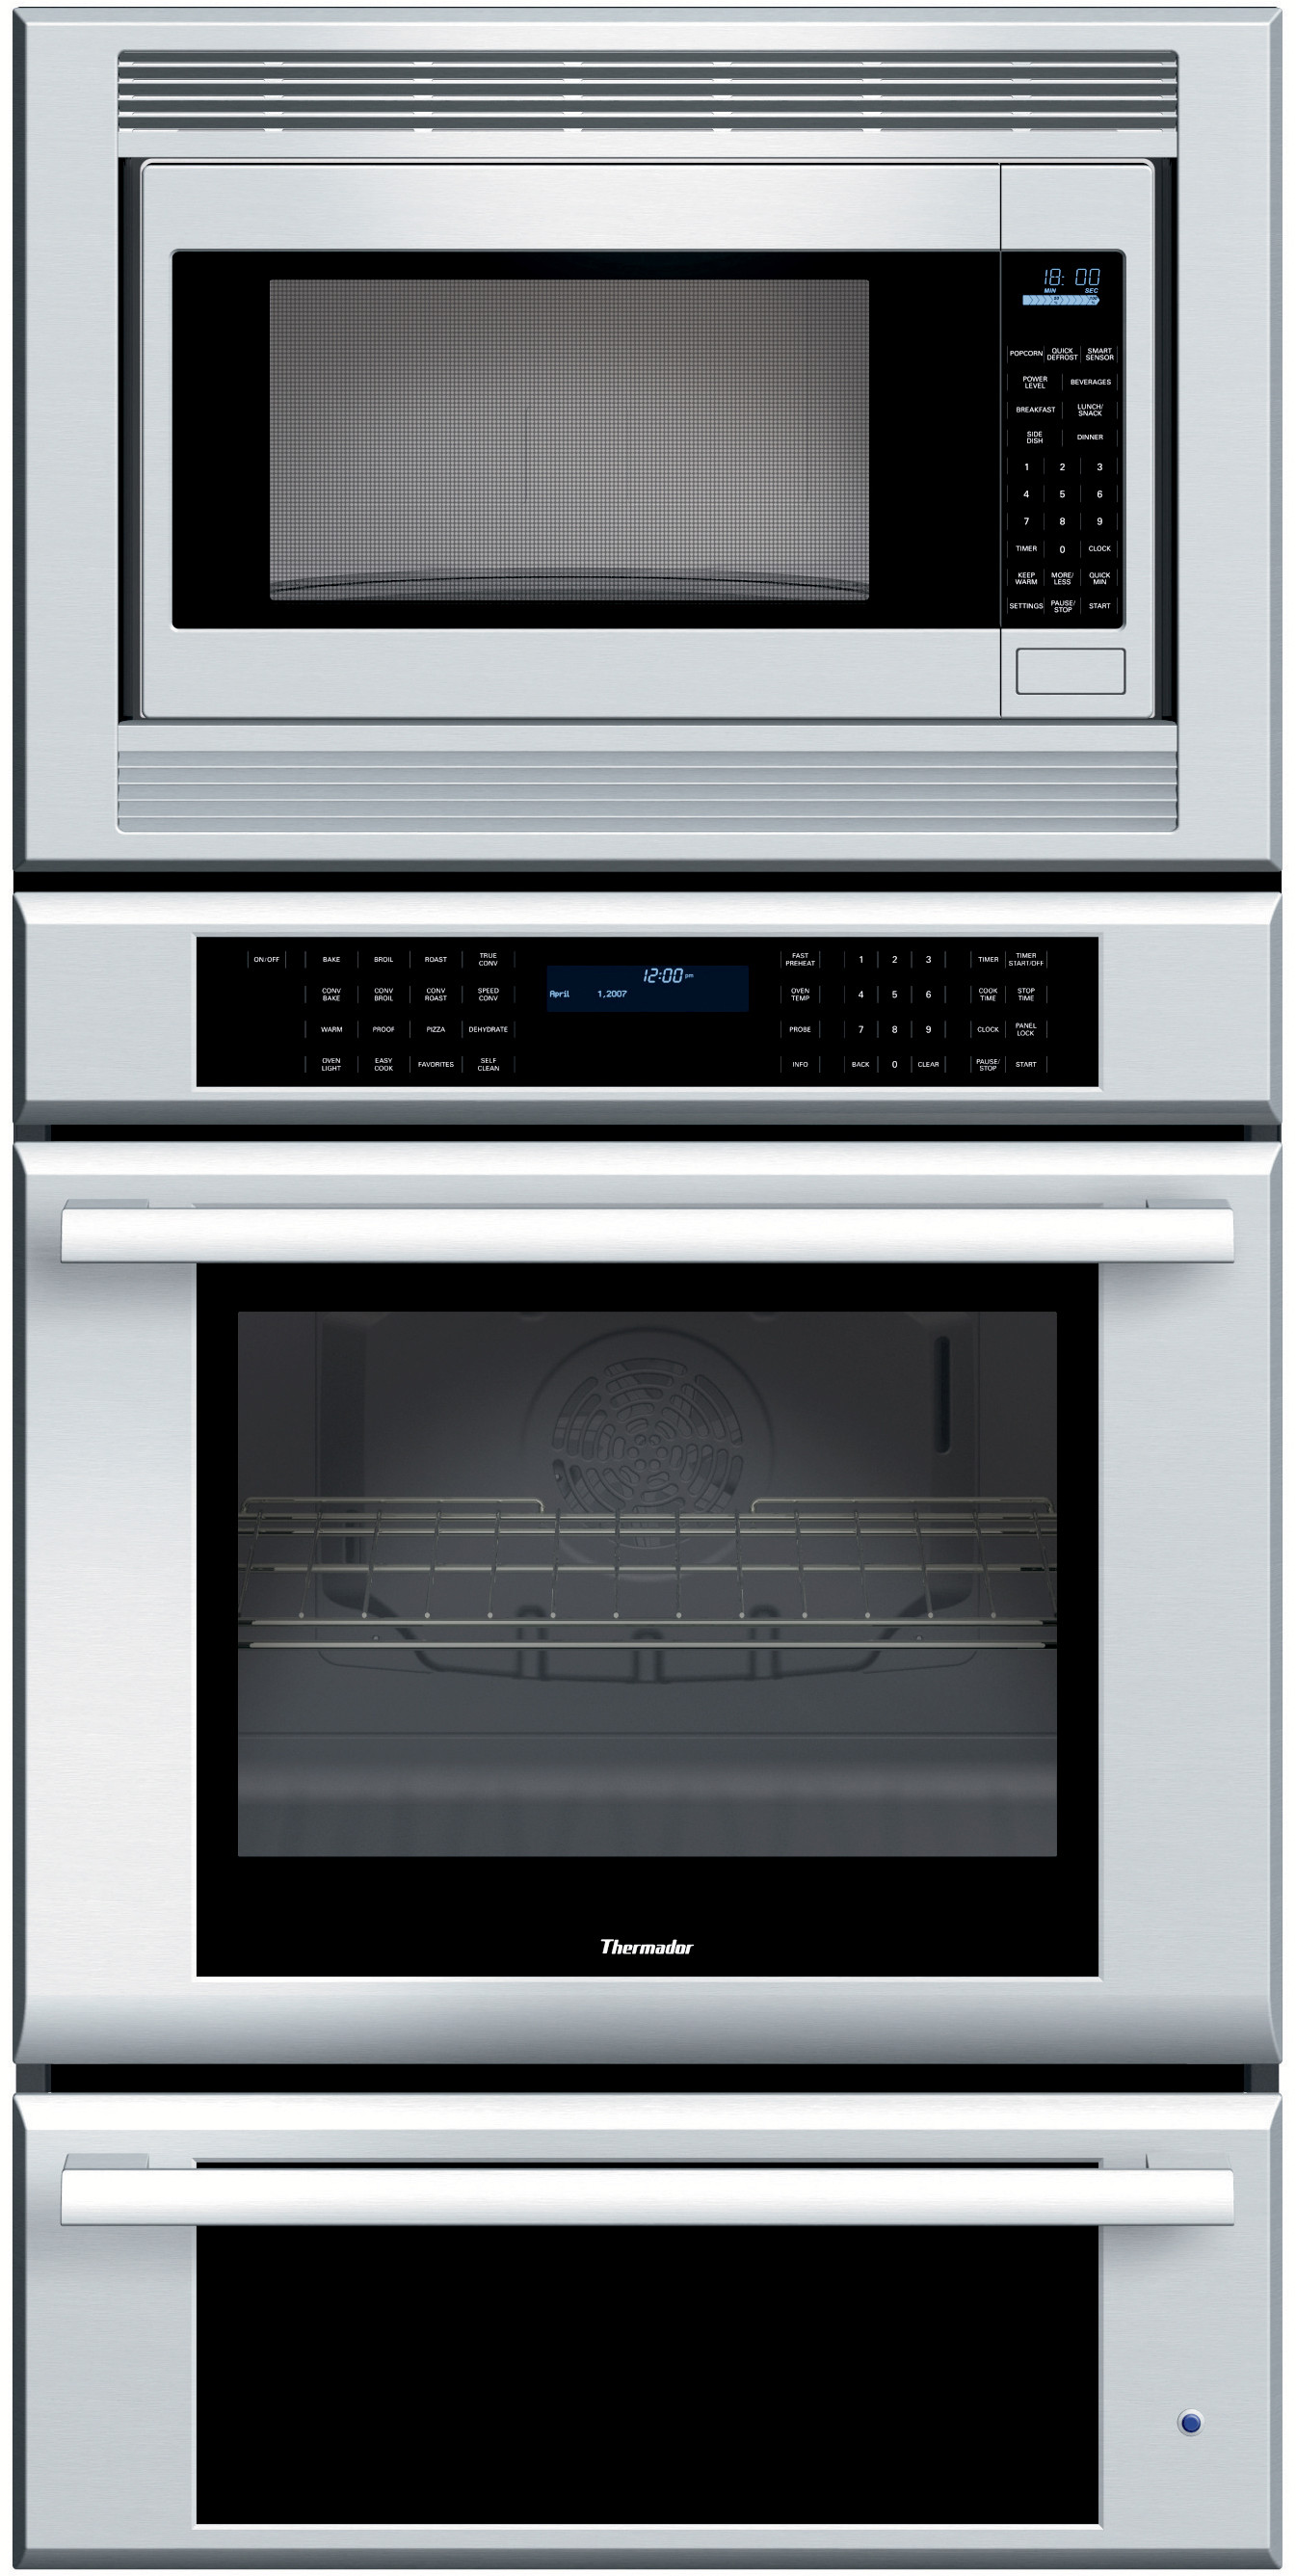 Thermador Memw271eb 27 Inch Triple Combination Wall Oven